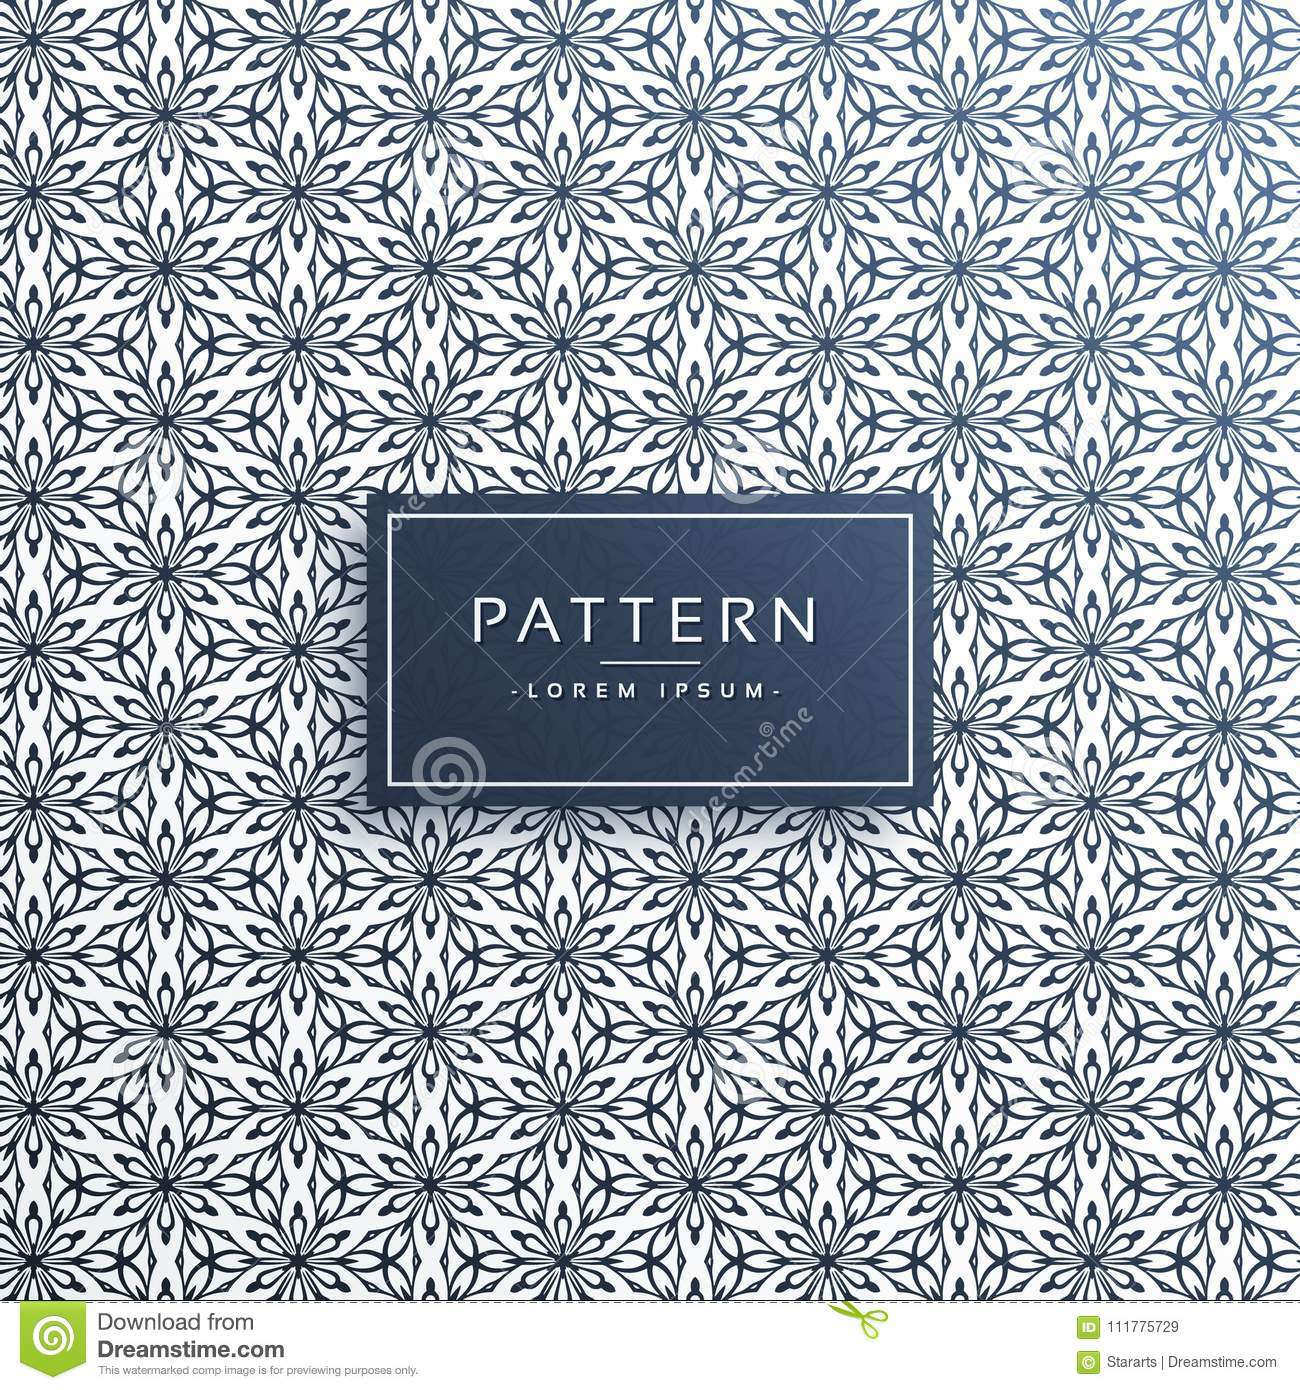 Detailed abstract flower pattern background